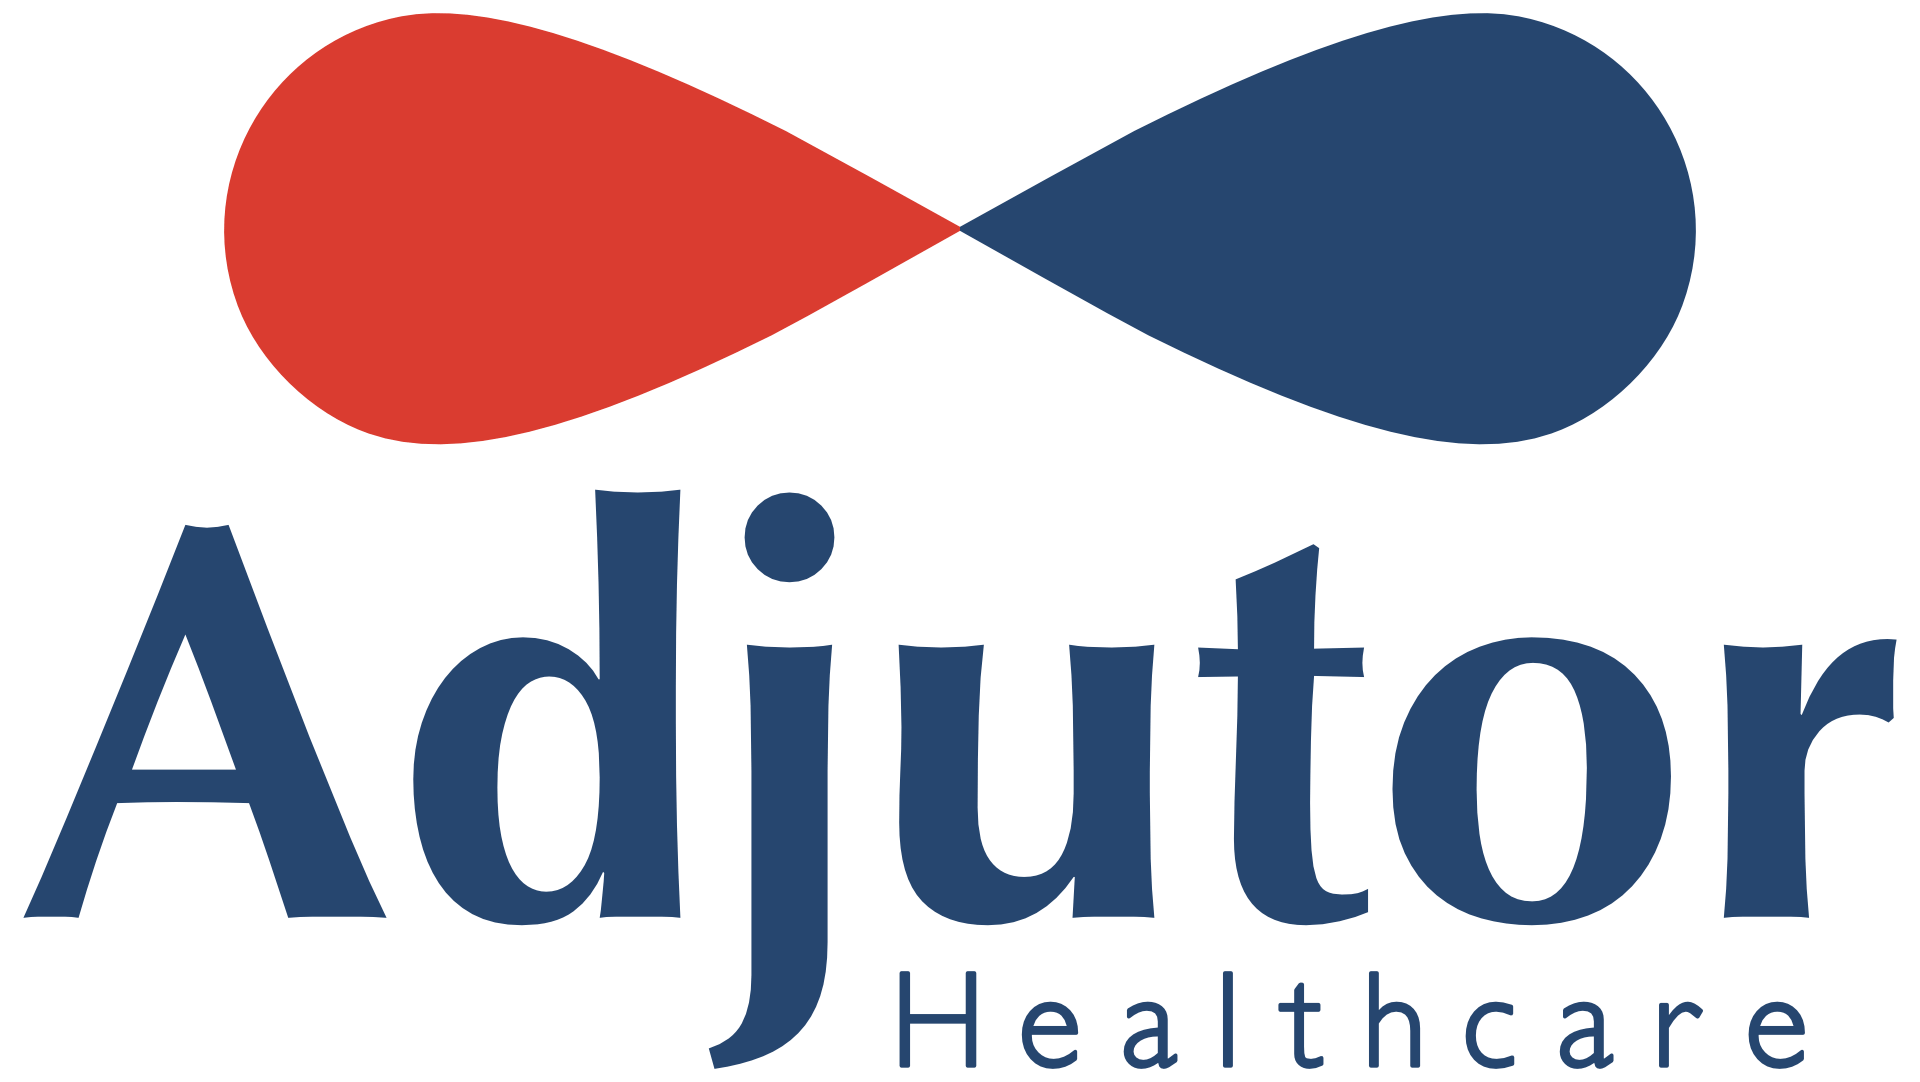 This is the official © Adjutor Healthcare Logo. It is subject to copyright and may not be used in any way or form without the express permission of Adjutor Healthcare Pty Ltd.